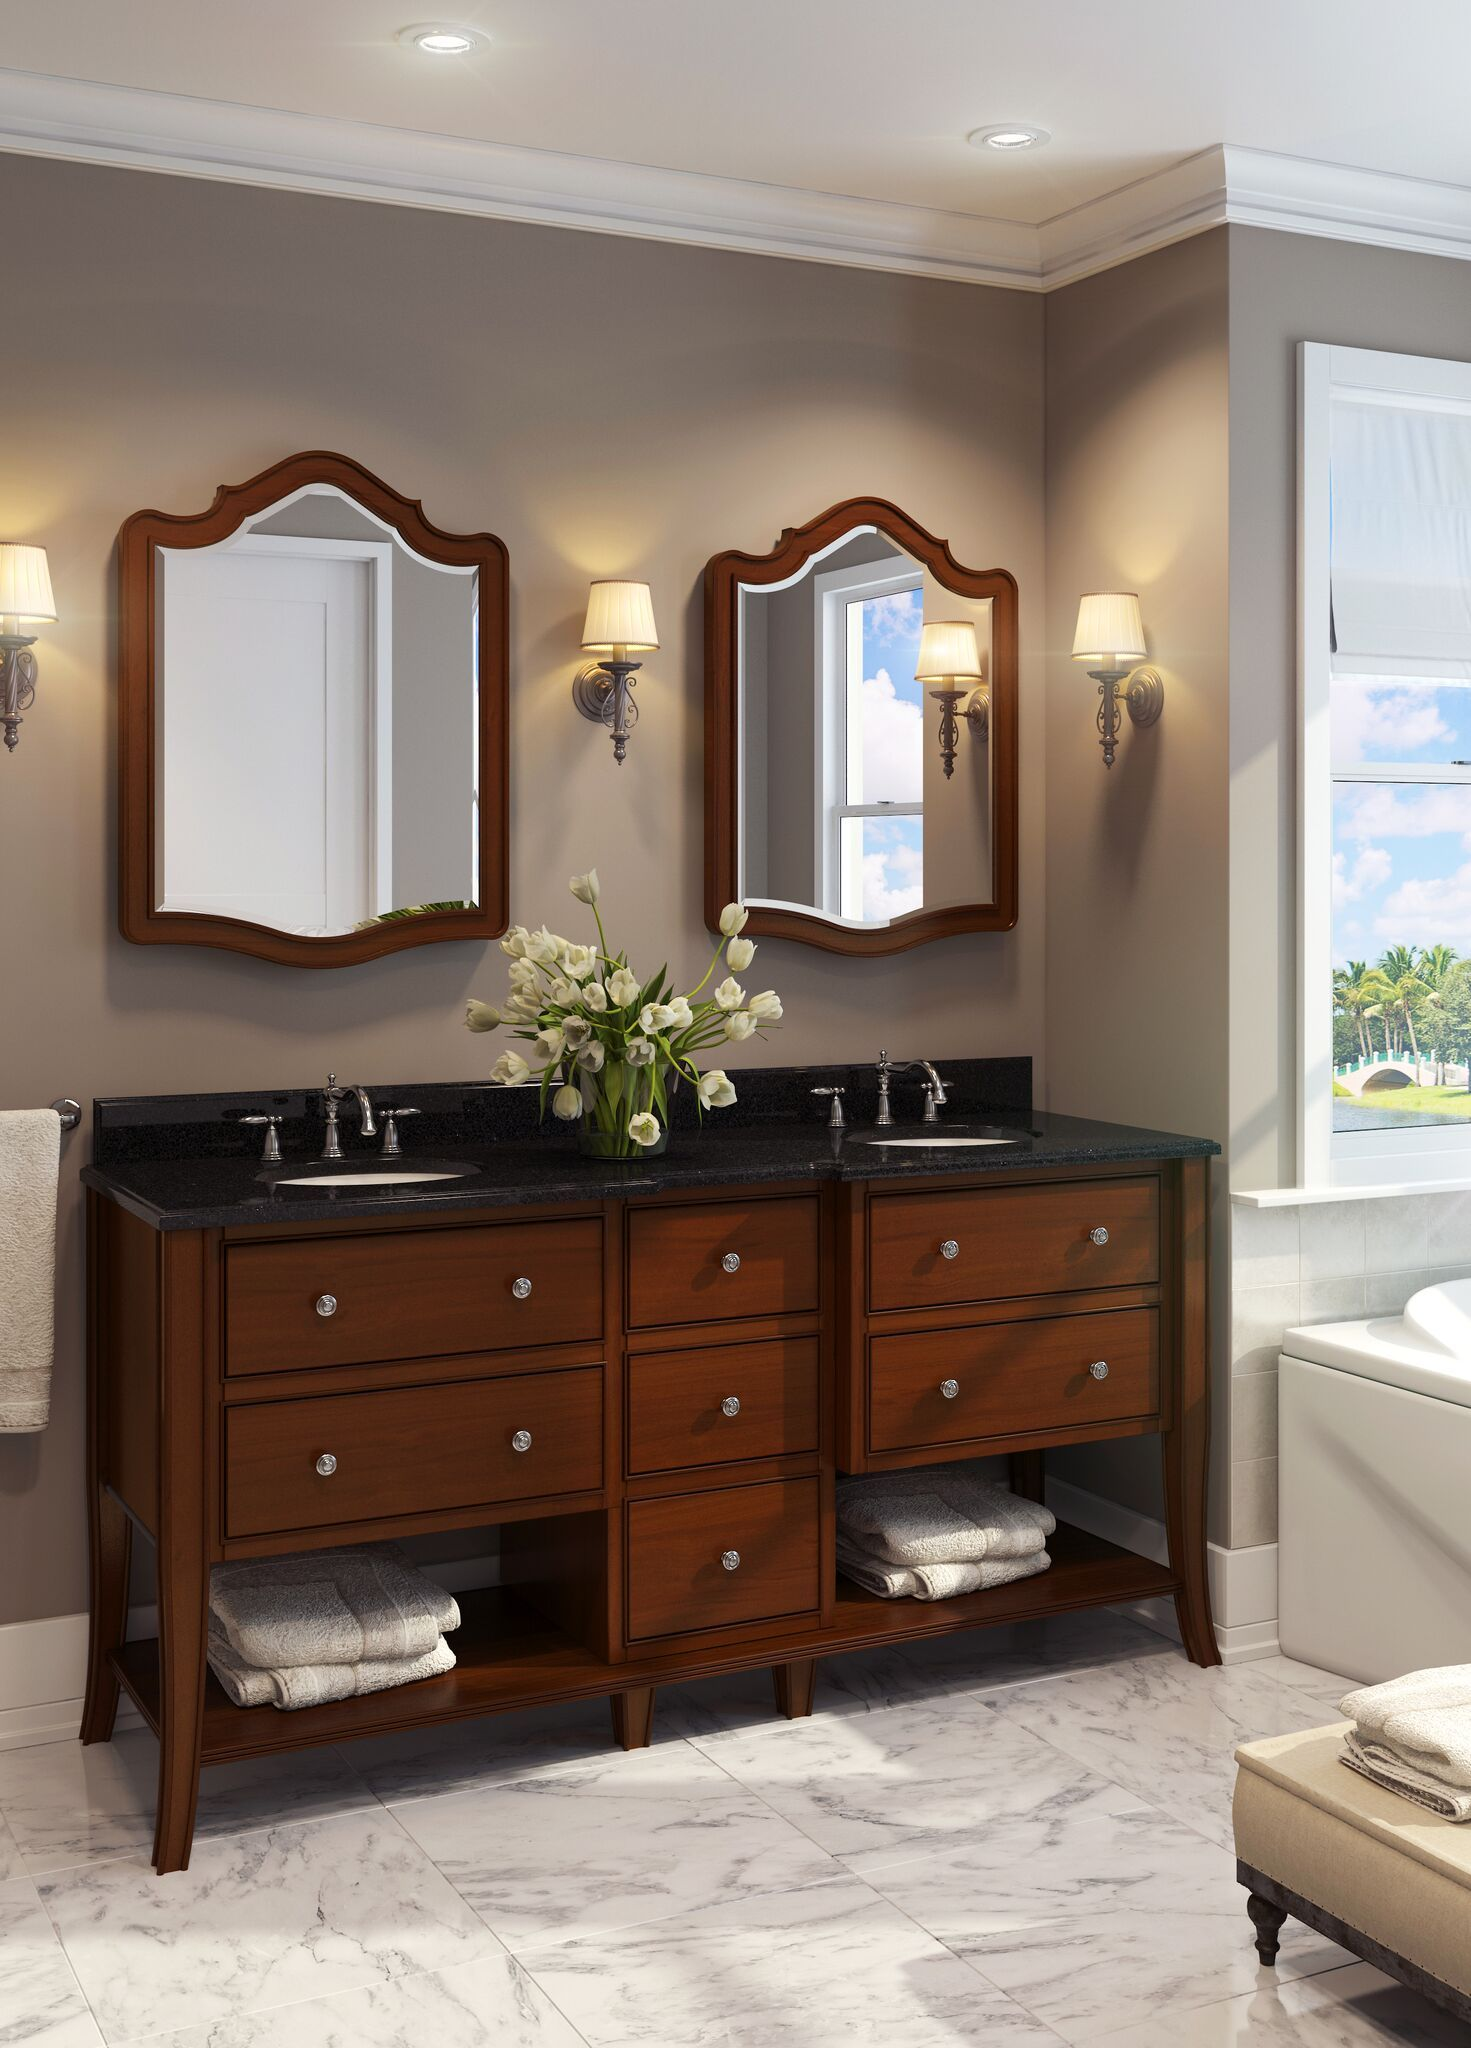 Awesome Websites Philadelphia Refined double vanity with rich chocolate brown finish and cabriole legs with